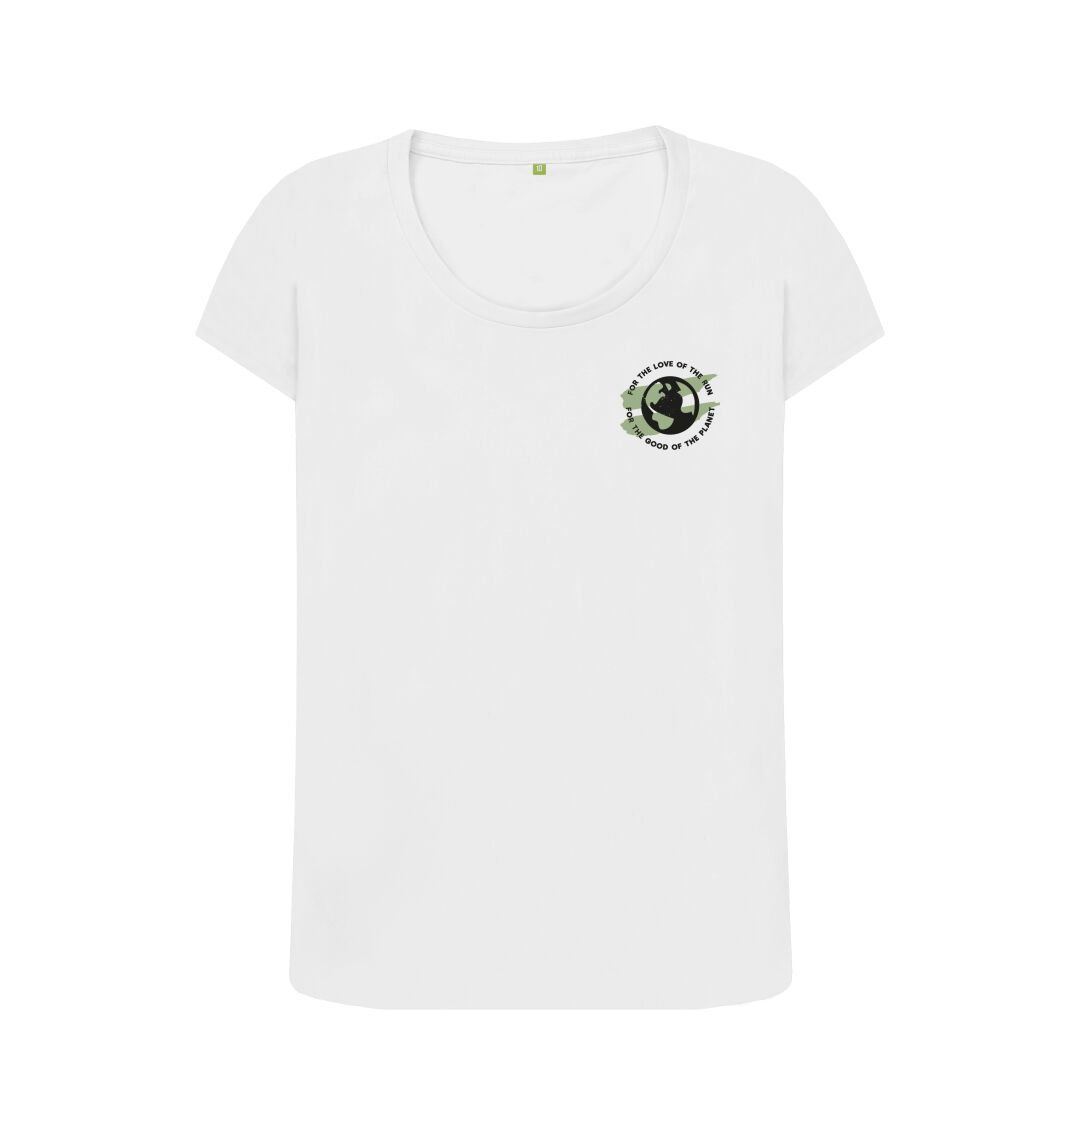 White Earth Scoop Tee in Terrain - Women's